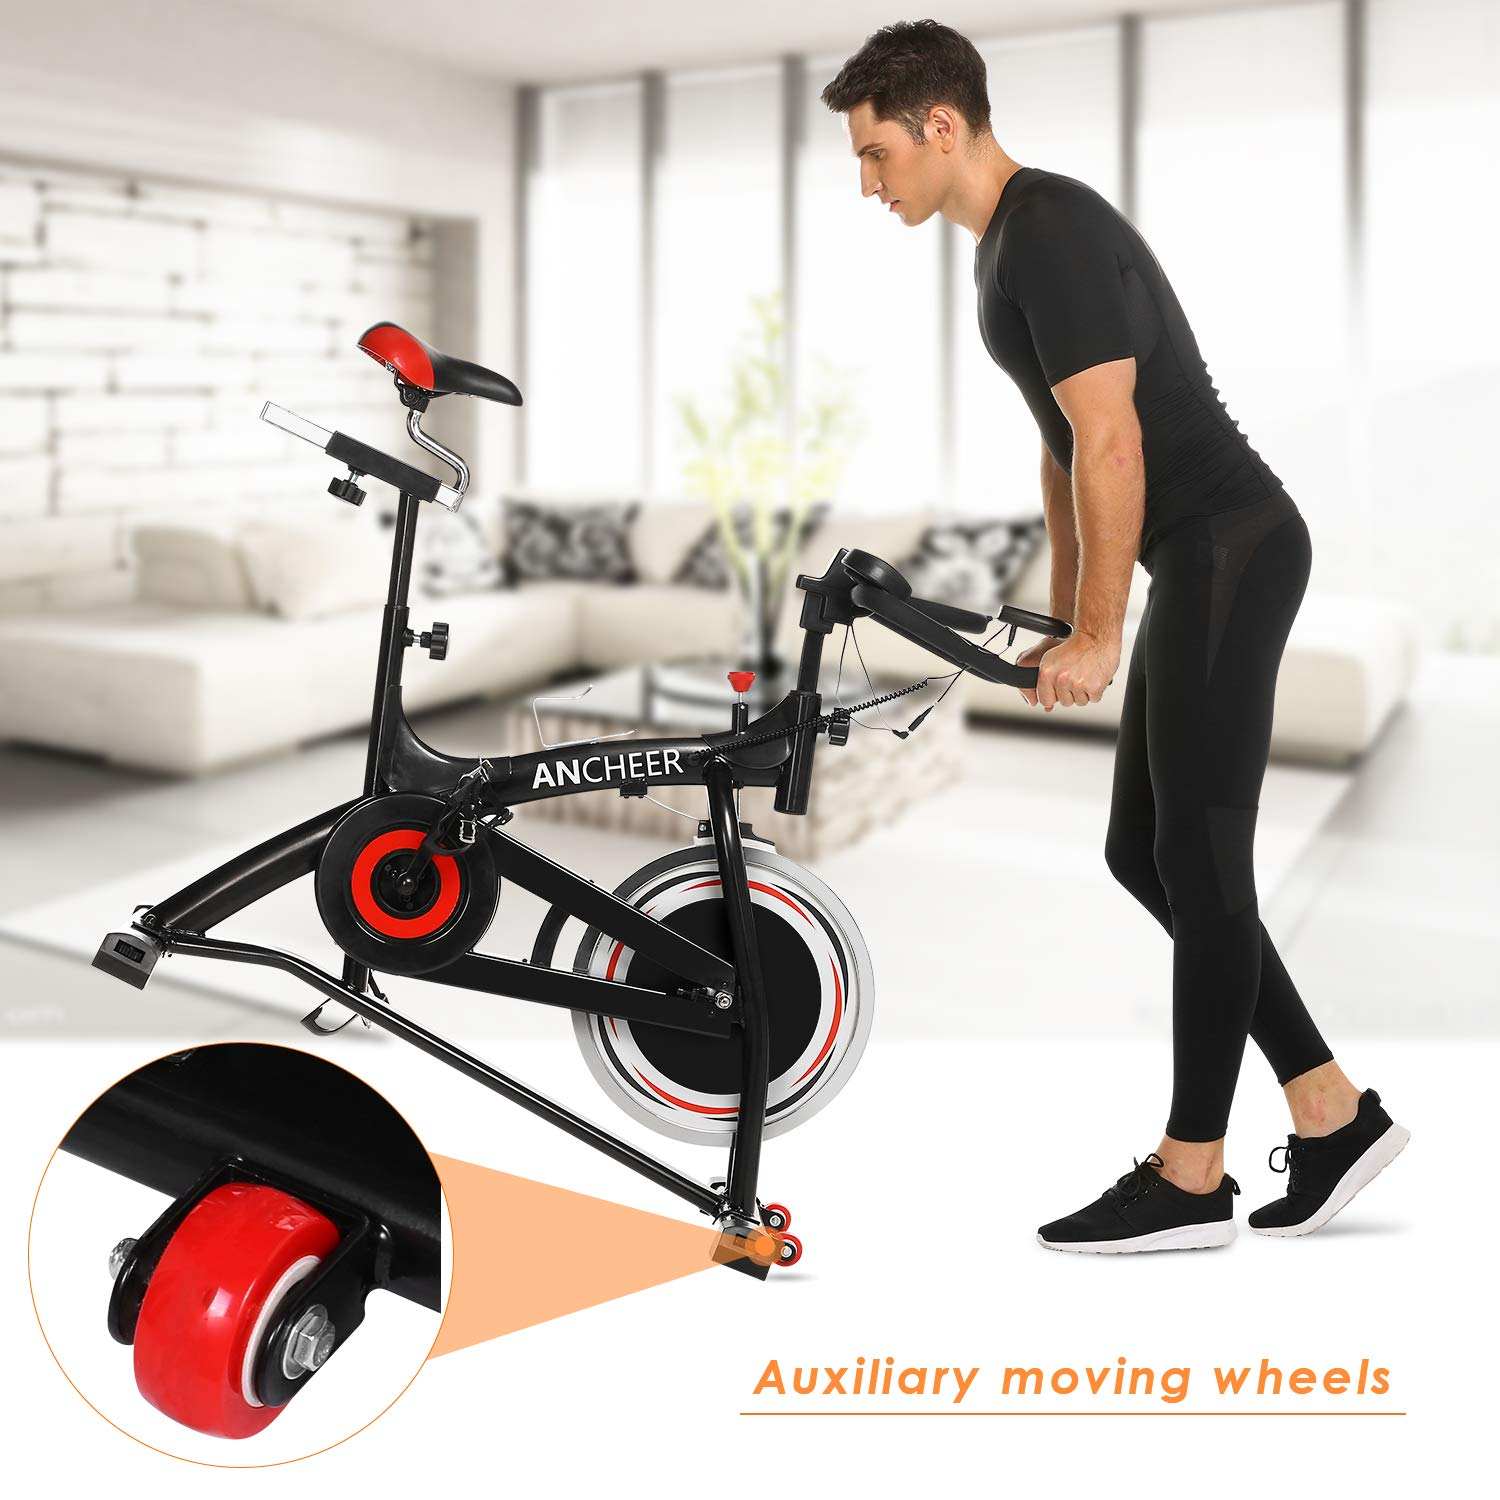 ANCHEER Stationary Bike, 40 LBS Flywheel Belt Drive Indoor Cycling Exercise Bike with Pulse, Elbow Tray (Model: ANCHEER-A5001) (Black) by ANCHEER (Image #7)